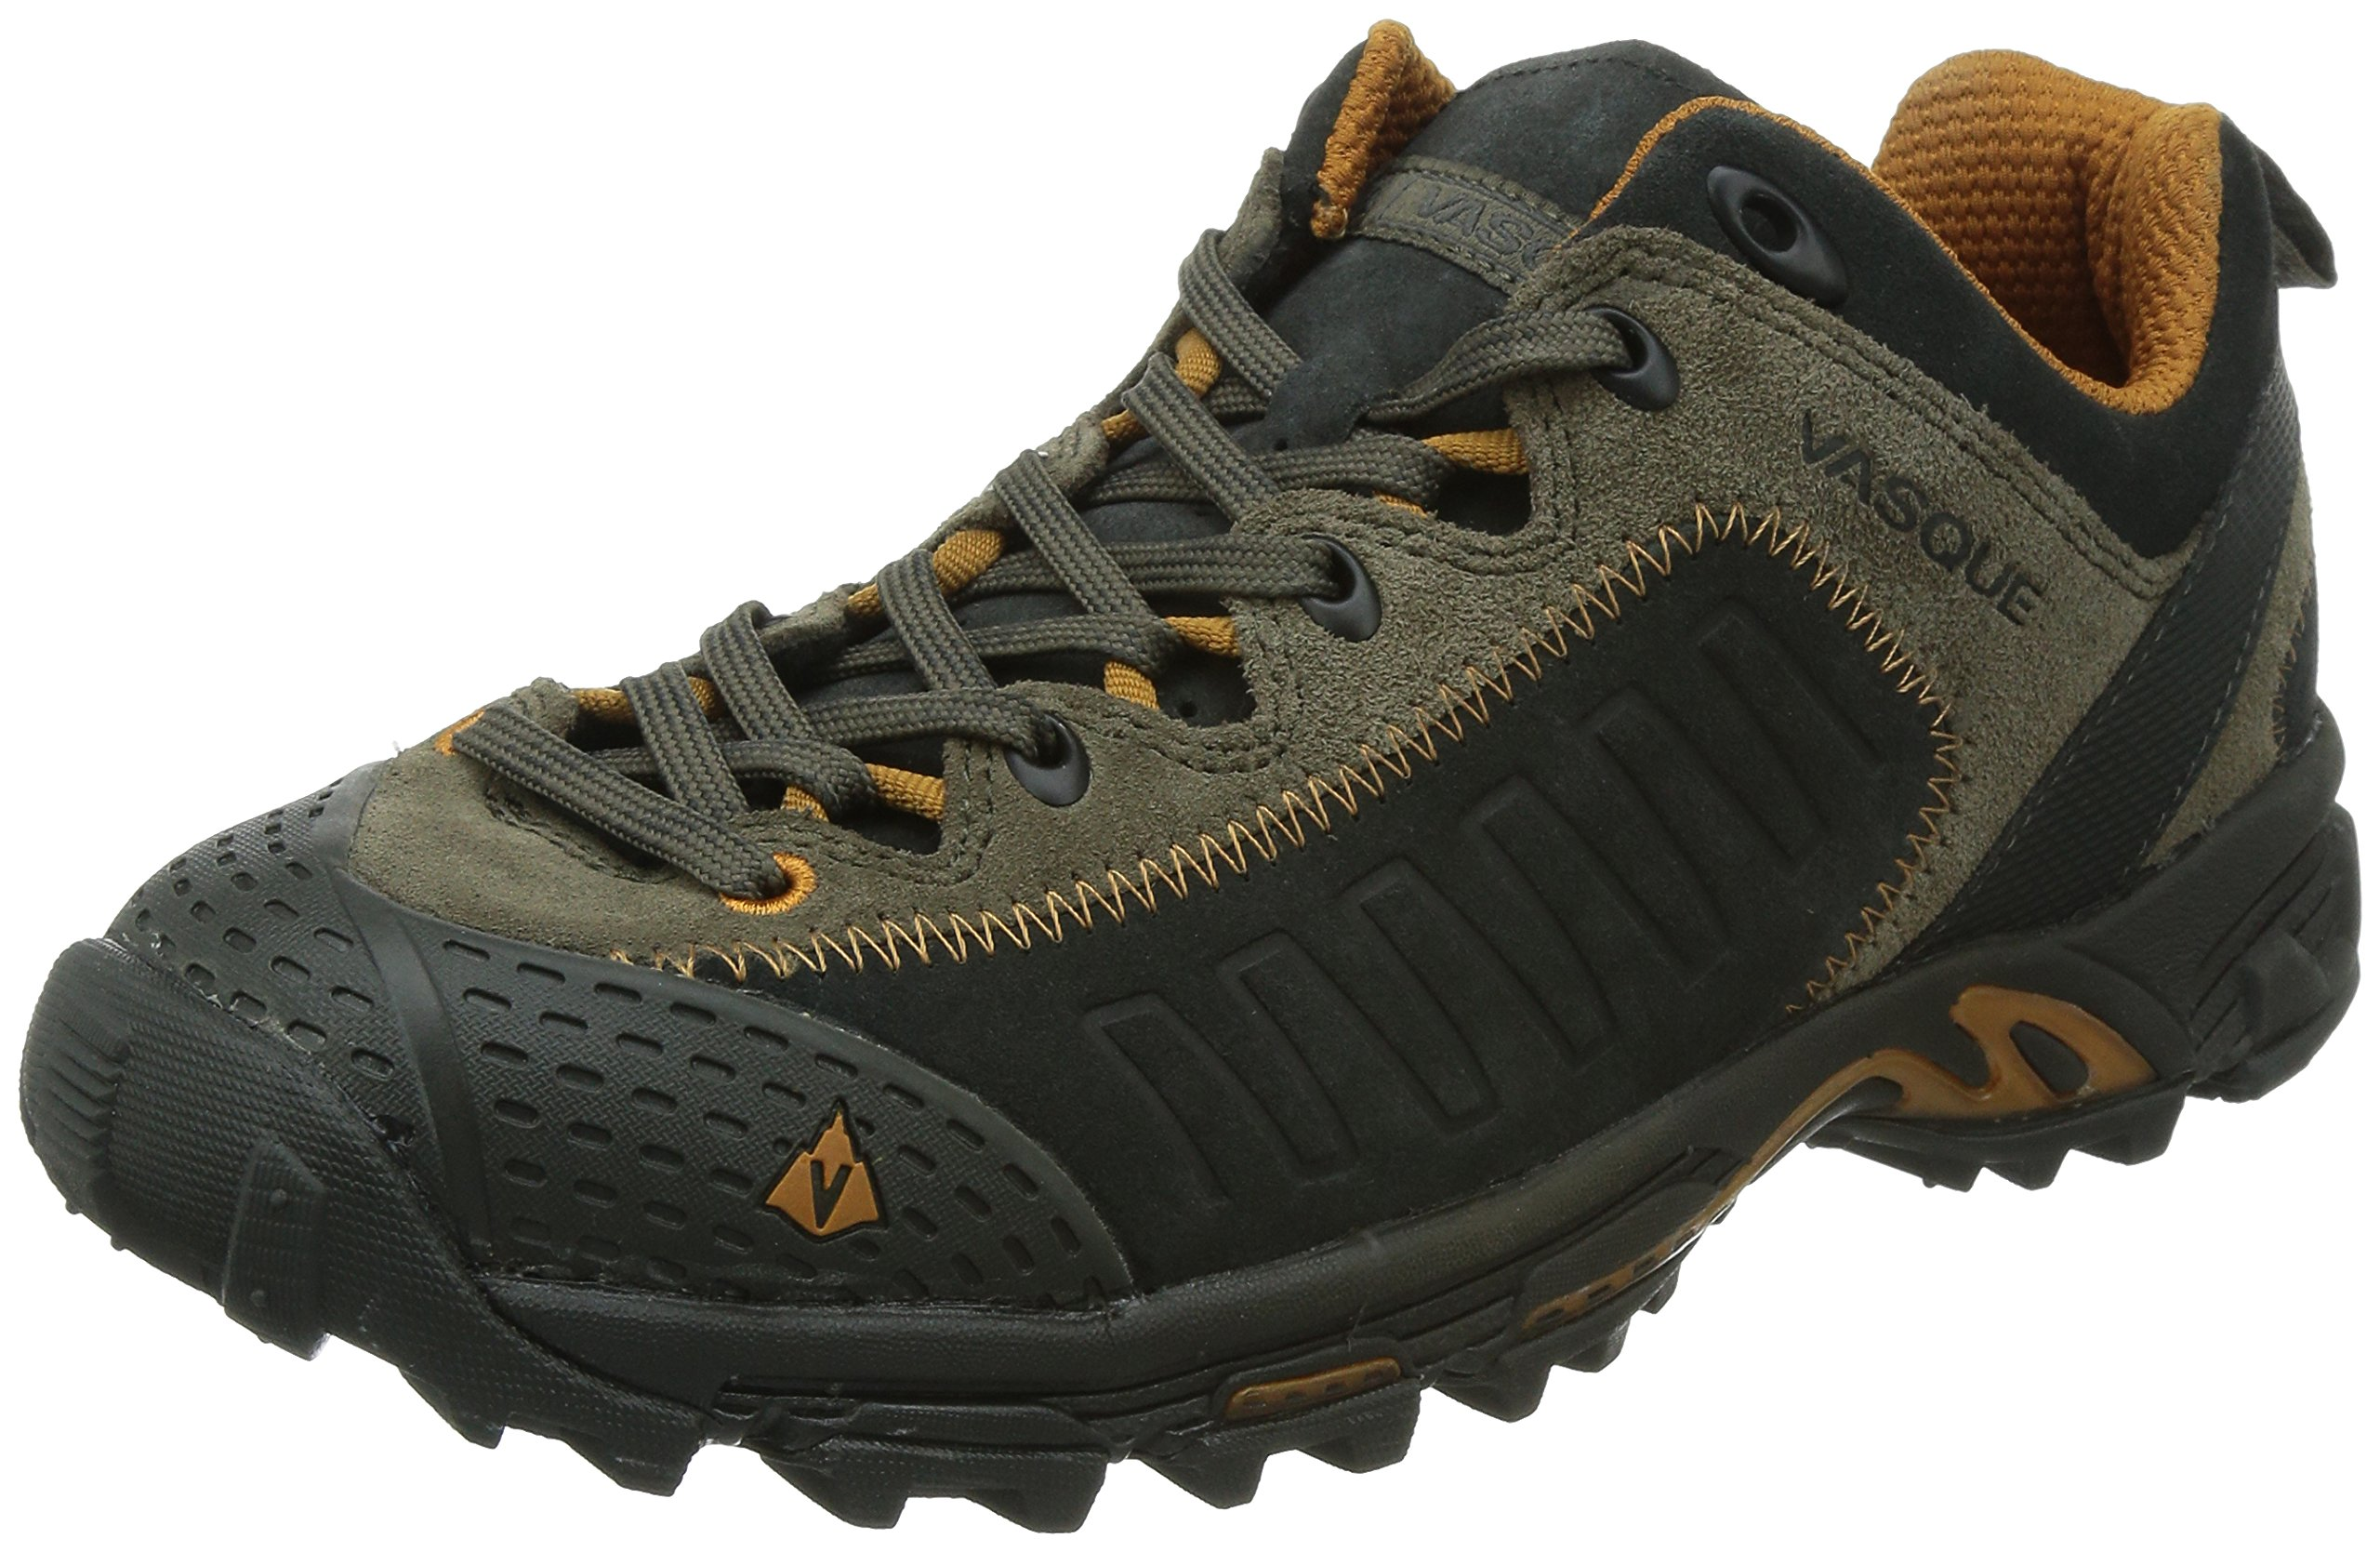 Vasque Men's Juxt Multisport Shoe,Peat/Sudan Brown,10.5 M by Vasque